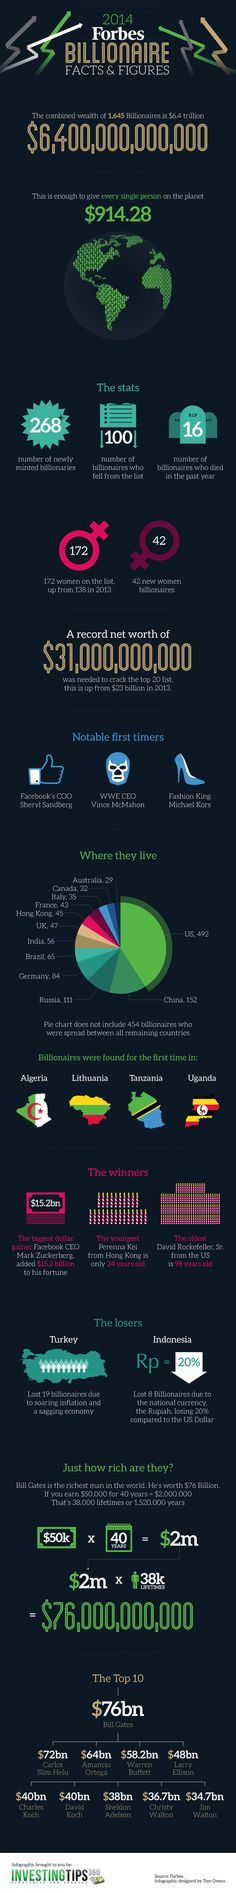 2014 forbes billionaire facts figures infographic joy richard preuss is forbes billionaire 5429083025436146 5359390016430242 4571231605899063 2316